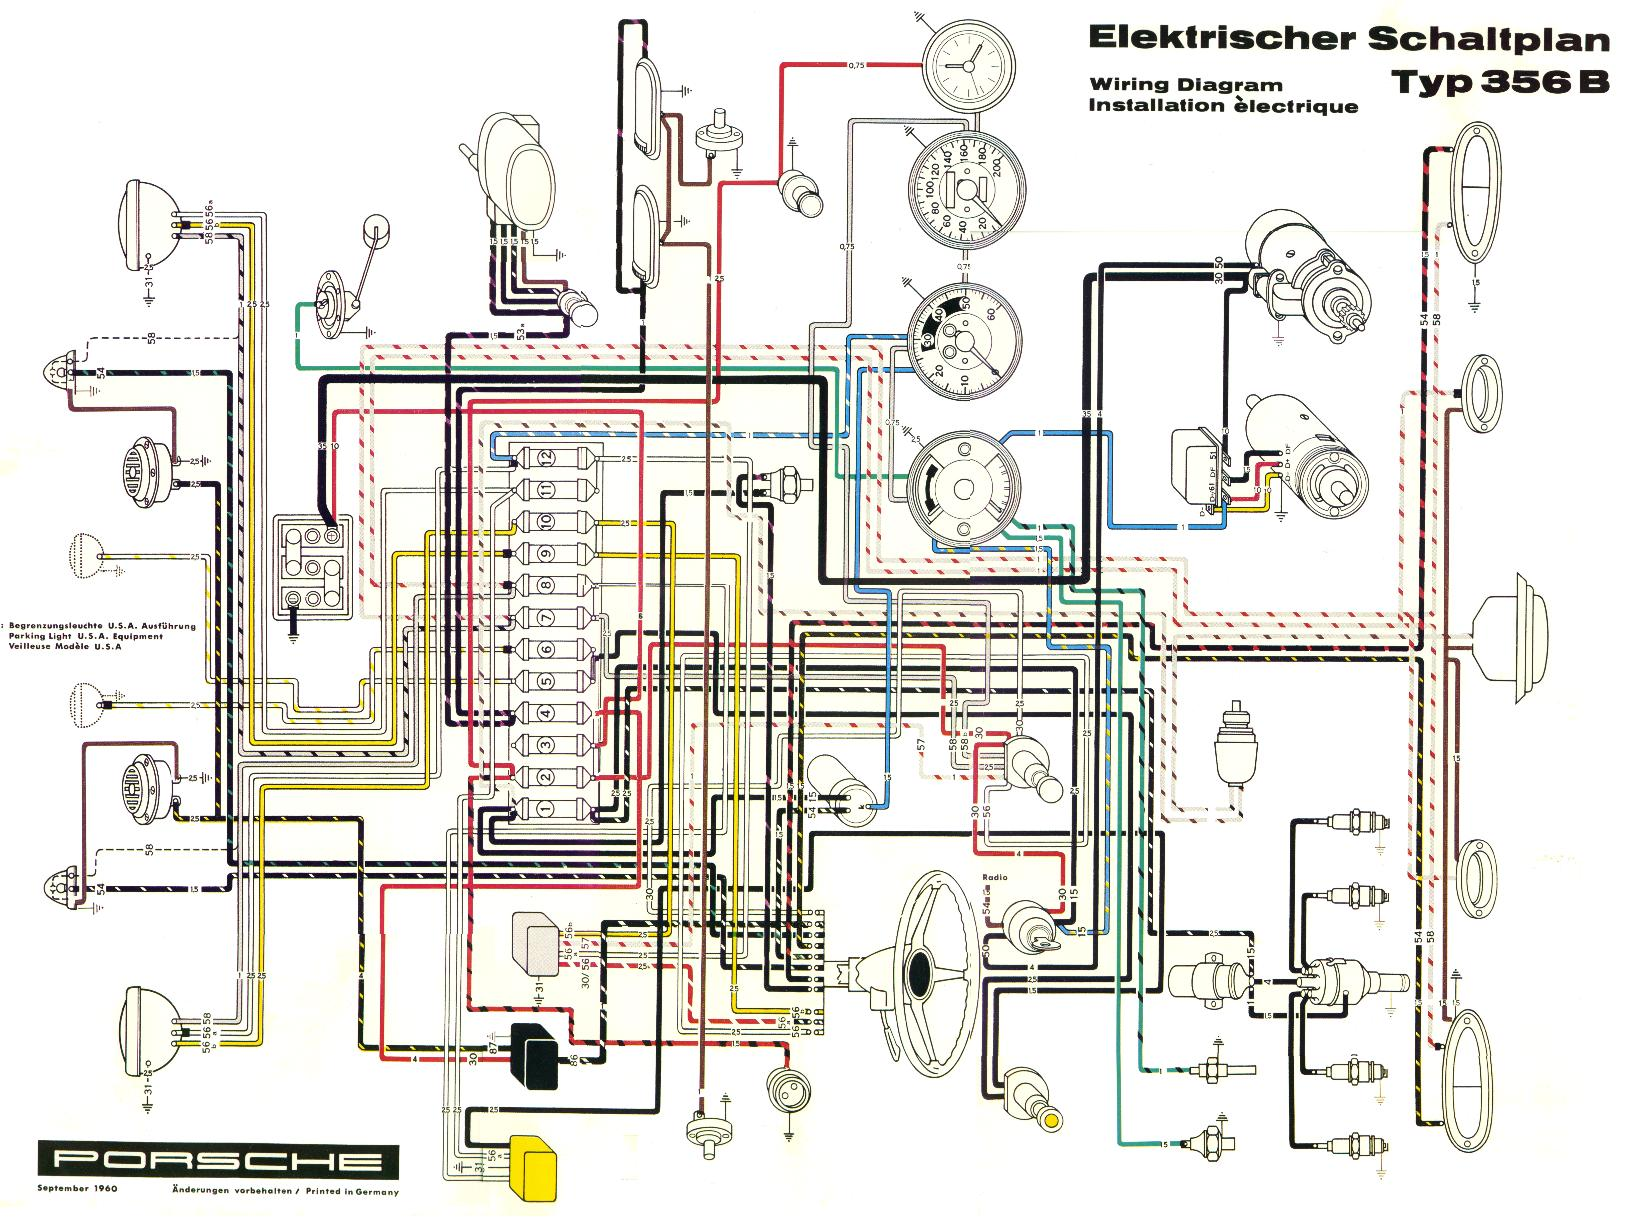 Wiring diagram for 1971 vw beetle the wiring diagram readingrat vw beetle wiring harness kit vw free wiring diagrams wiring diagram asfbconference2016 Gallery